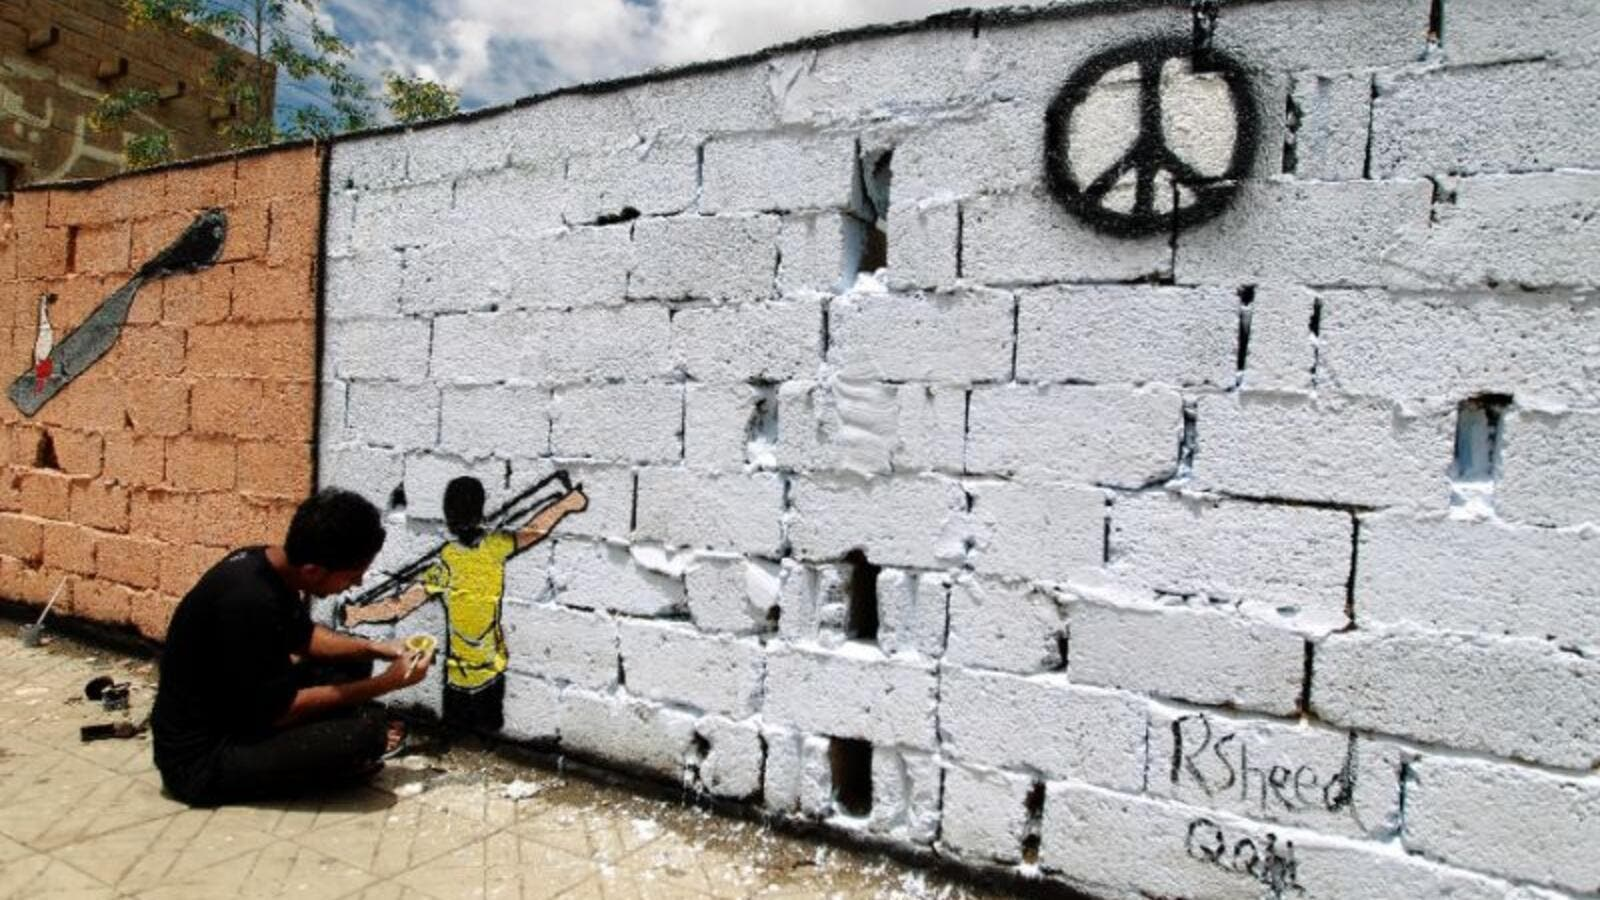 A Yemeni artist sprays graffiti on a wall in the capital Sanaa in support of peace. (AFP/File)